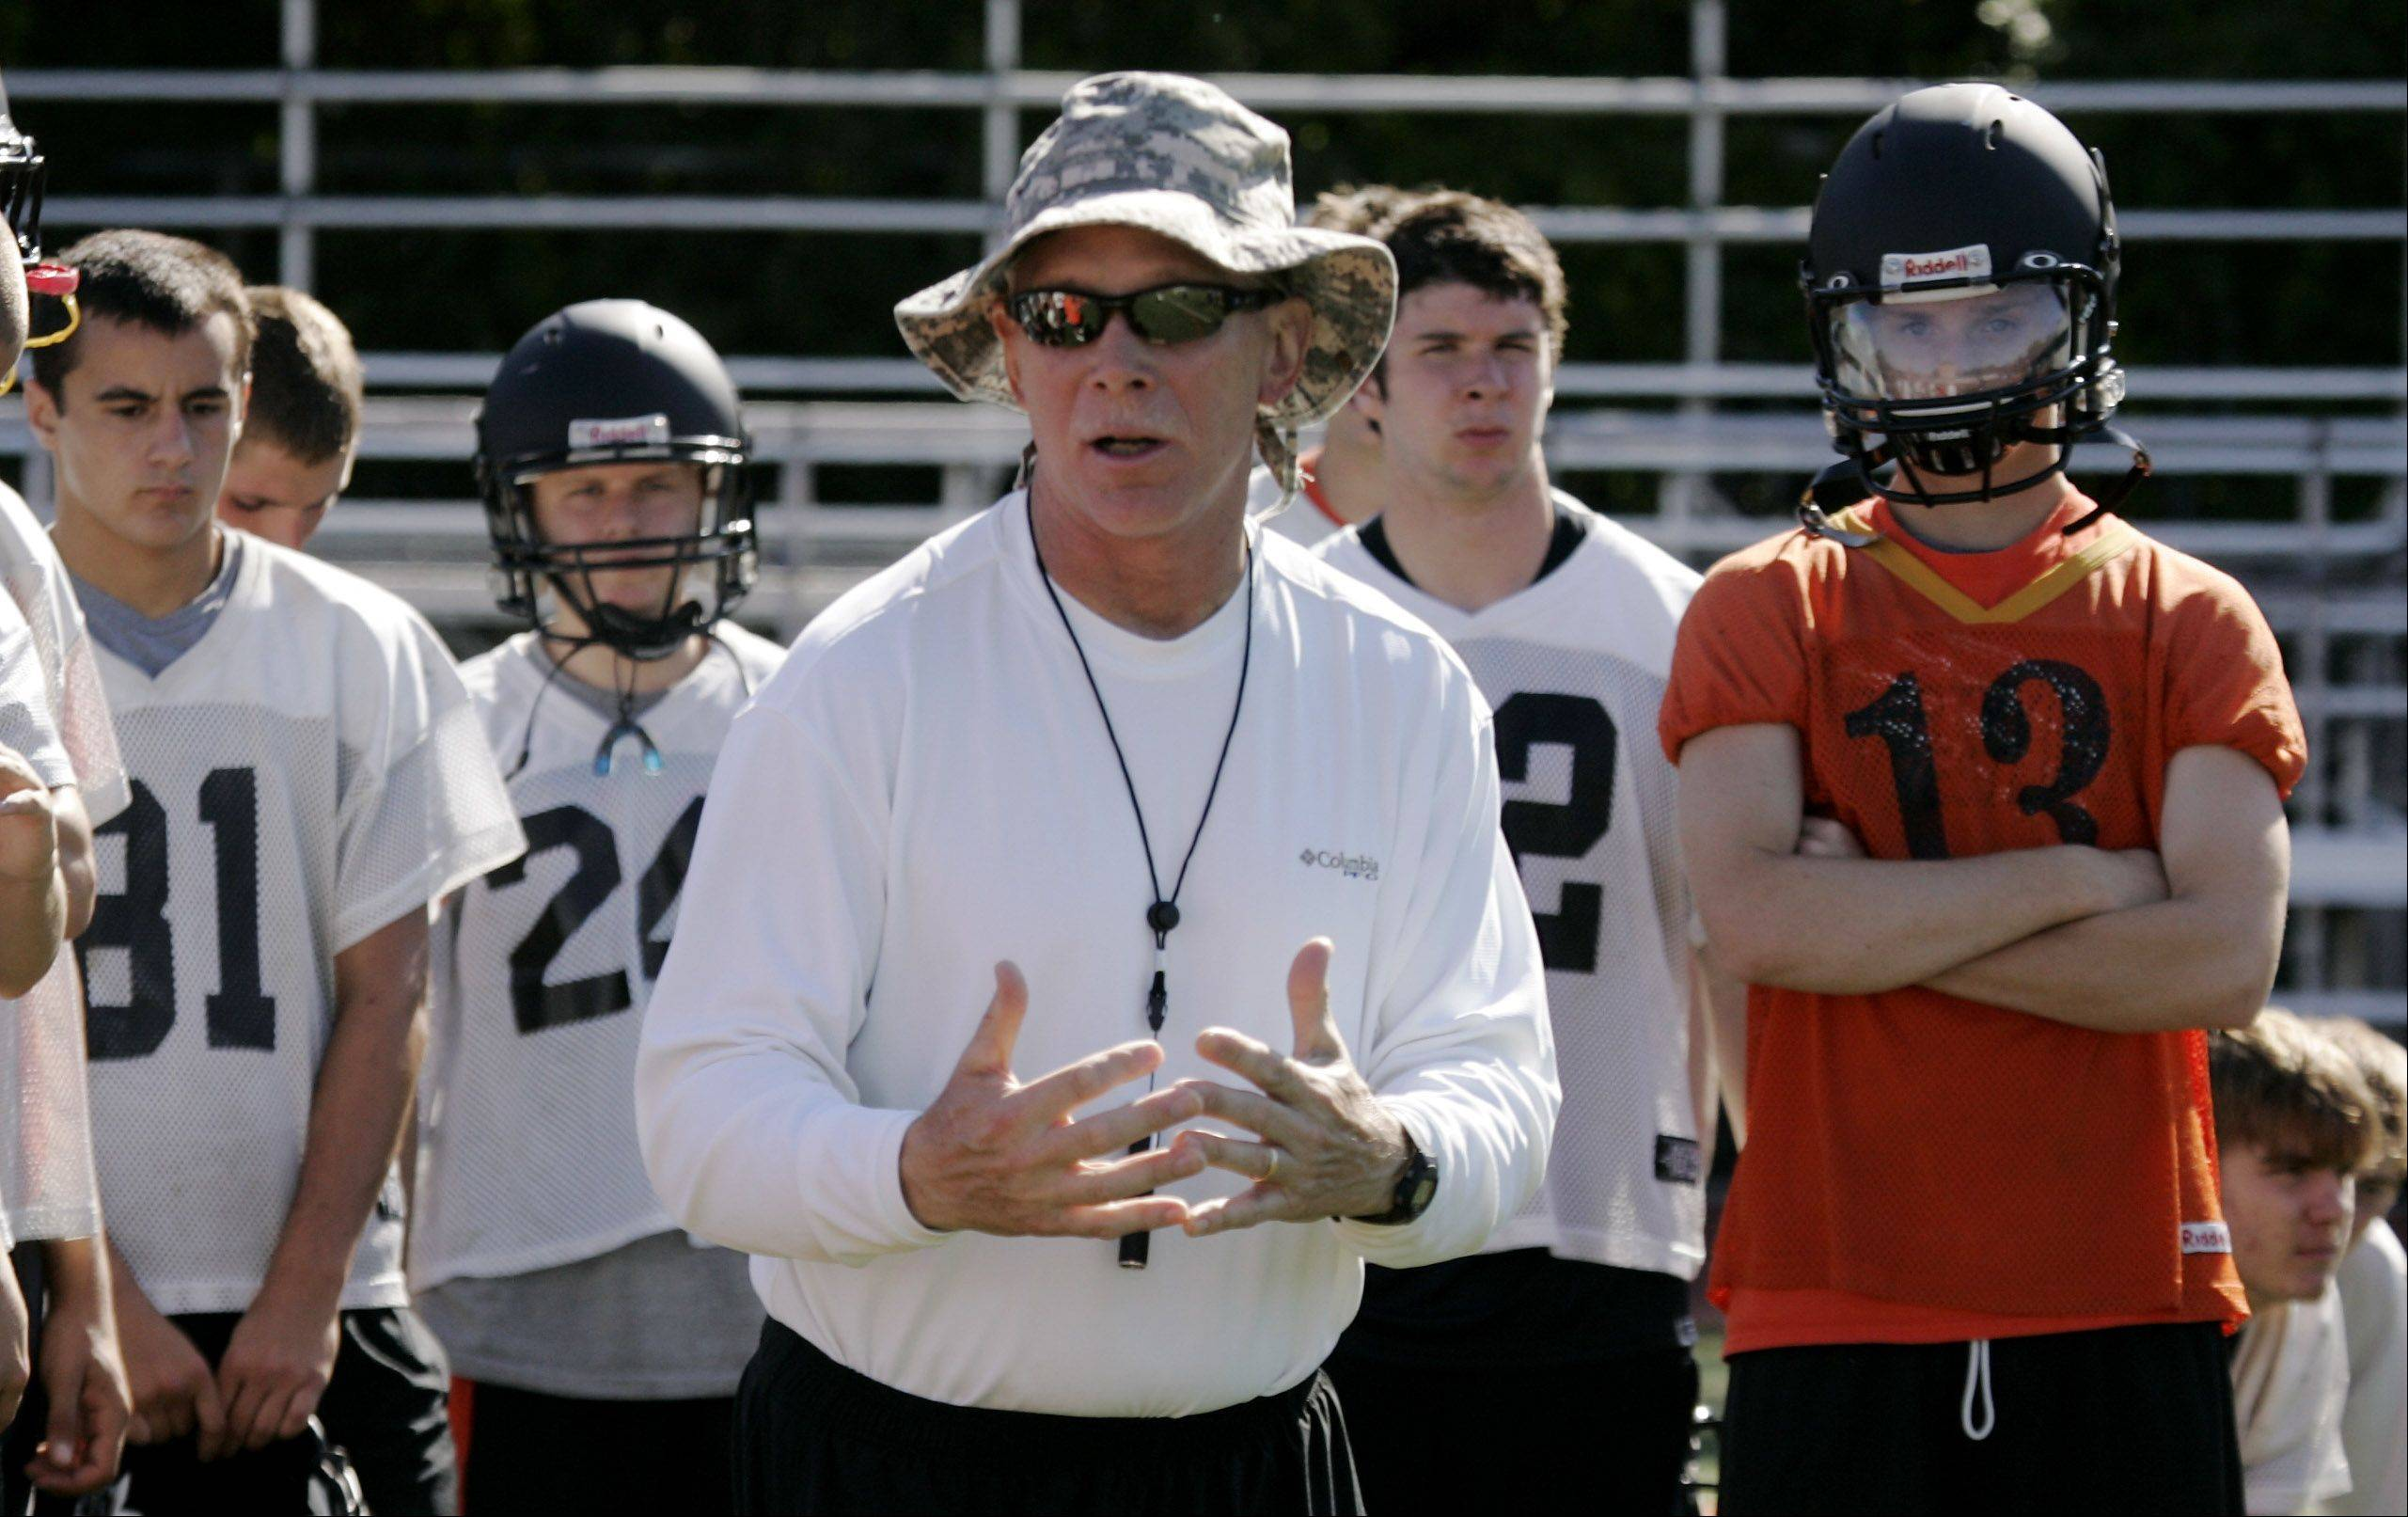 Head coach Randy Kuceyeski talks to the team during the first day of football practice Wednesday at Libertyville High School. Kuceyeski is retiring at the end of this season.